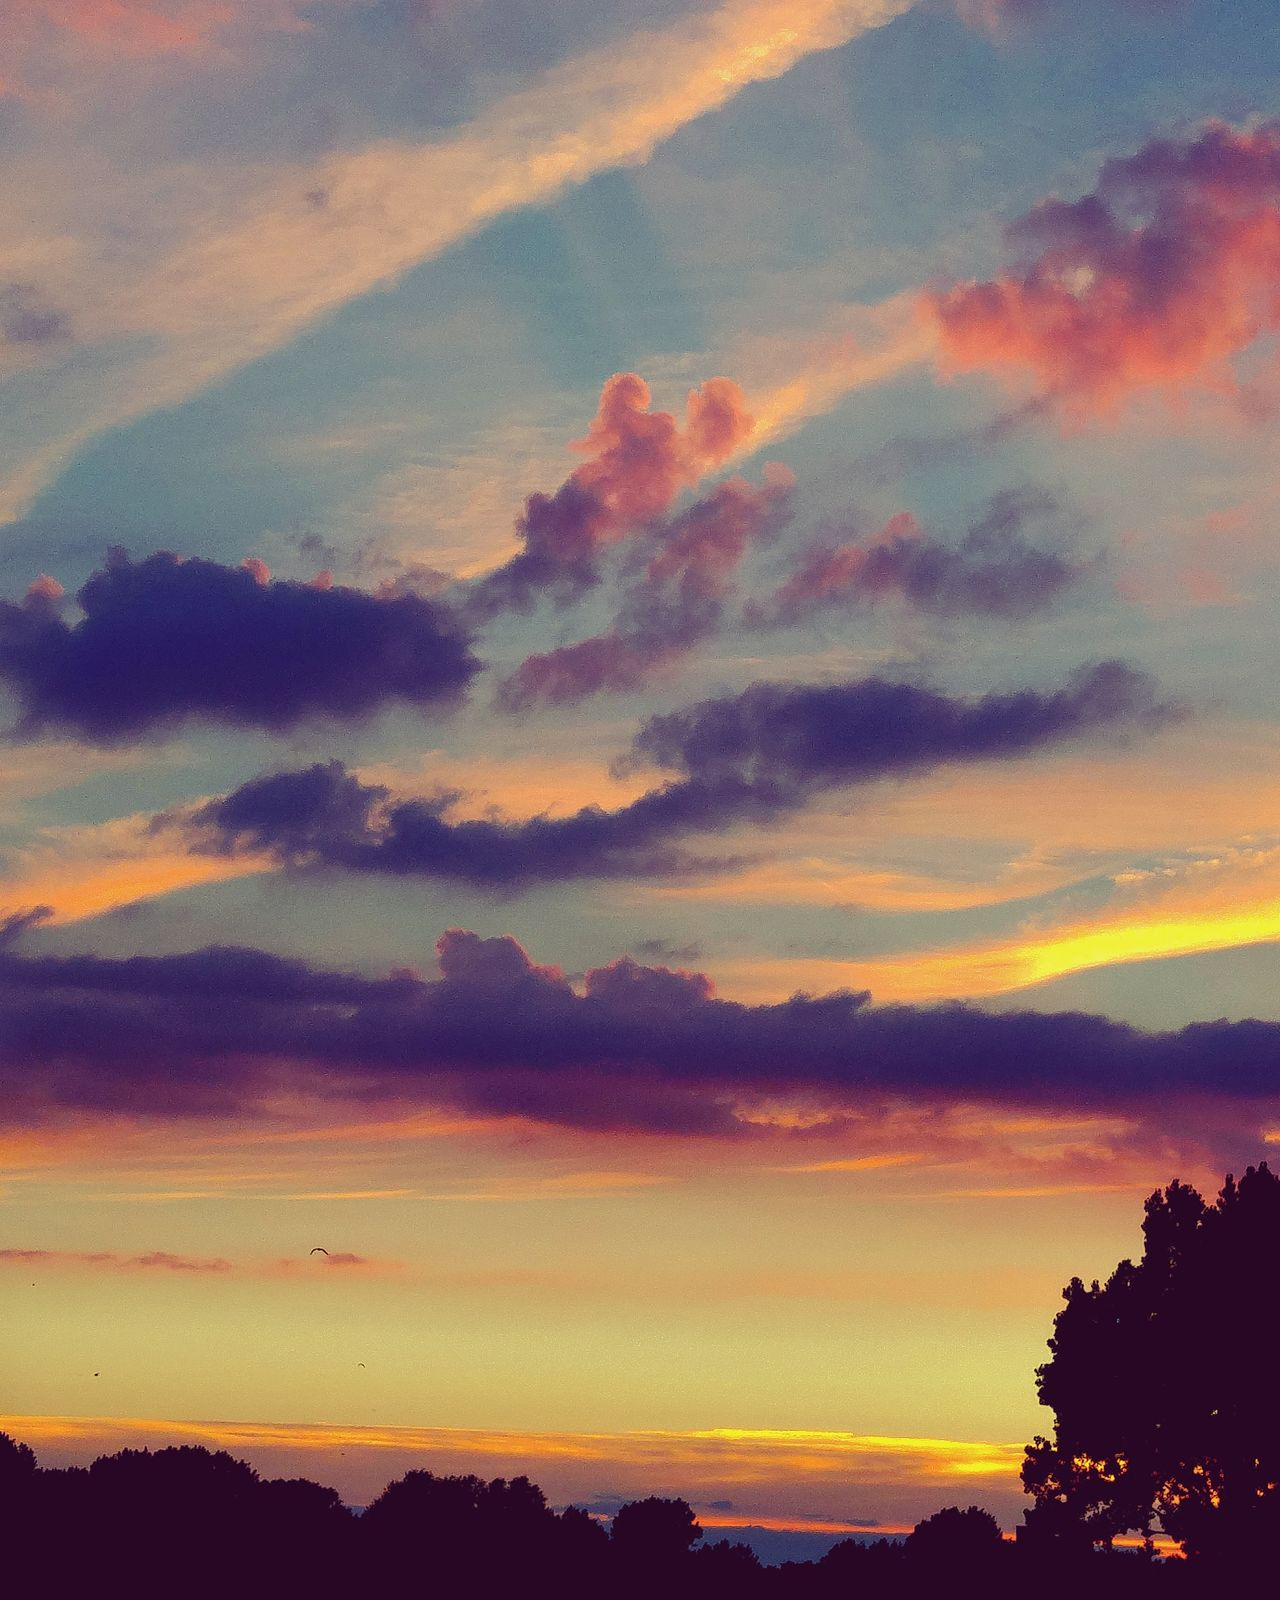 Sunset And Clouds  Sunsetporn Sunset_collection Cloudscape Skylovers Sky And Clouds Cloudysky Colorful Nature_perfection EyeEmNewHere Sunsetgram Sunsetphotographs Sunset_madness Sunset_captures Sunsetlover Sunsetmadness Rainbowcolors